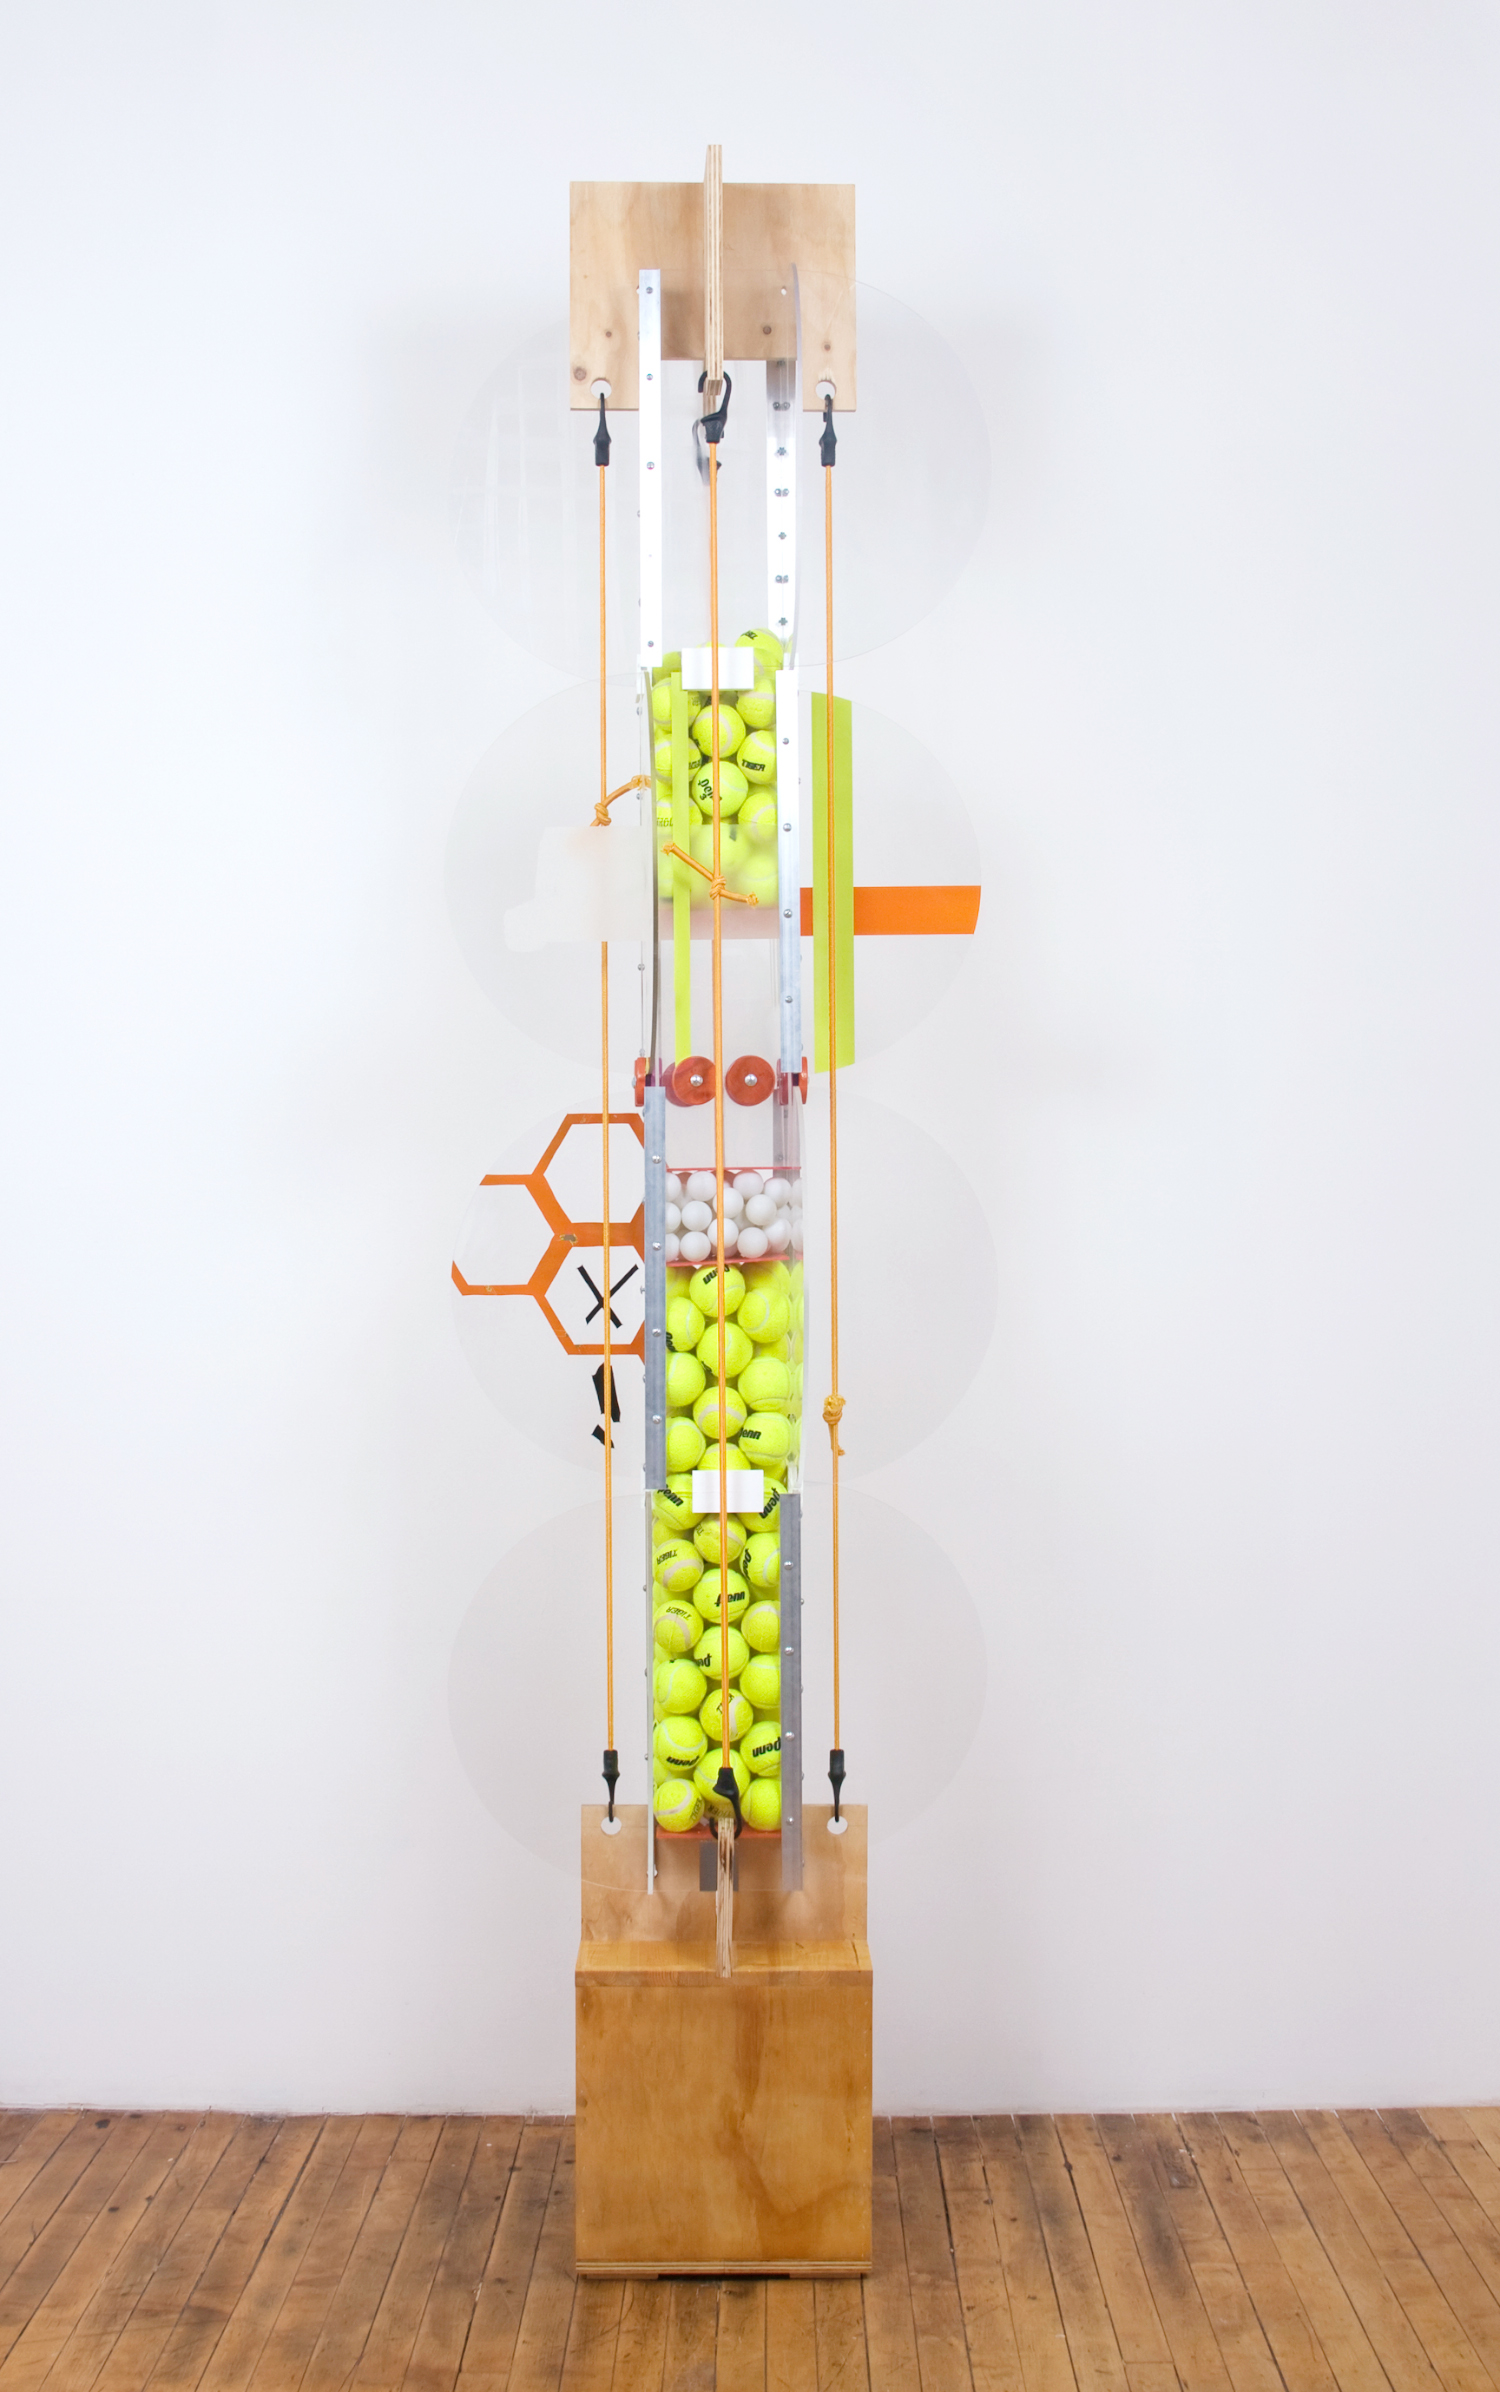 Jason Meadows  Vehicular Cellular Pattern  2008 Wood, extruded aluminum, hardware, plexi glass, spray paint, tennis balls, and mixed media 78h x 26w x 26d in JM018